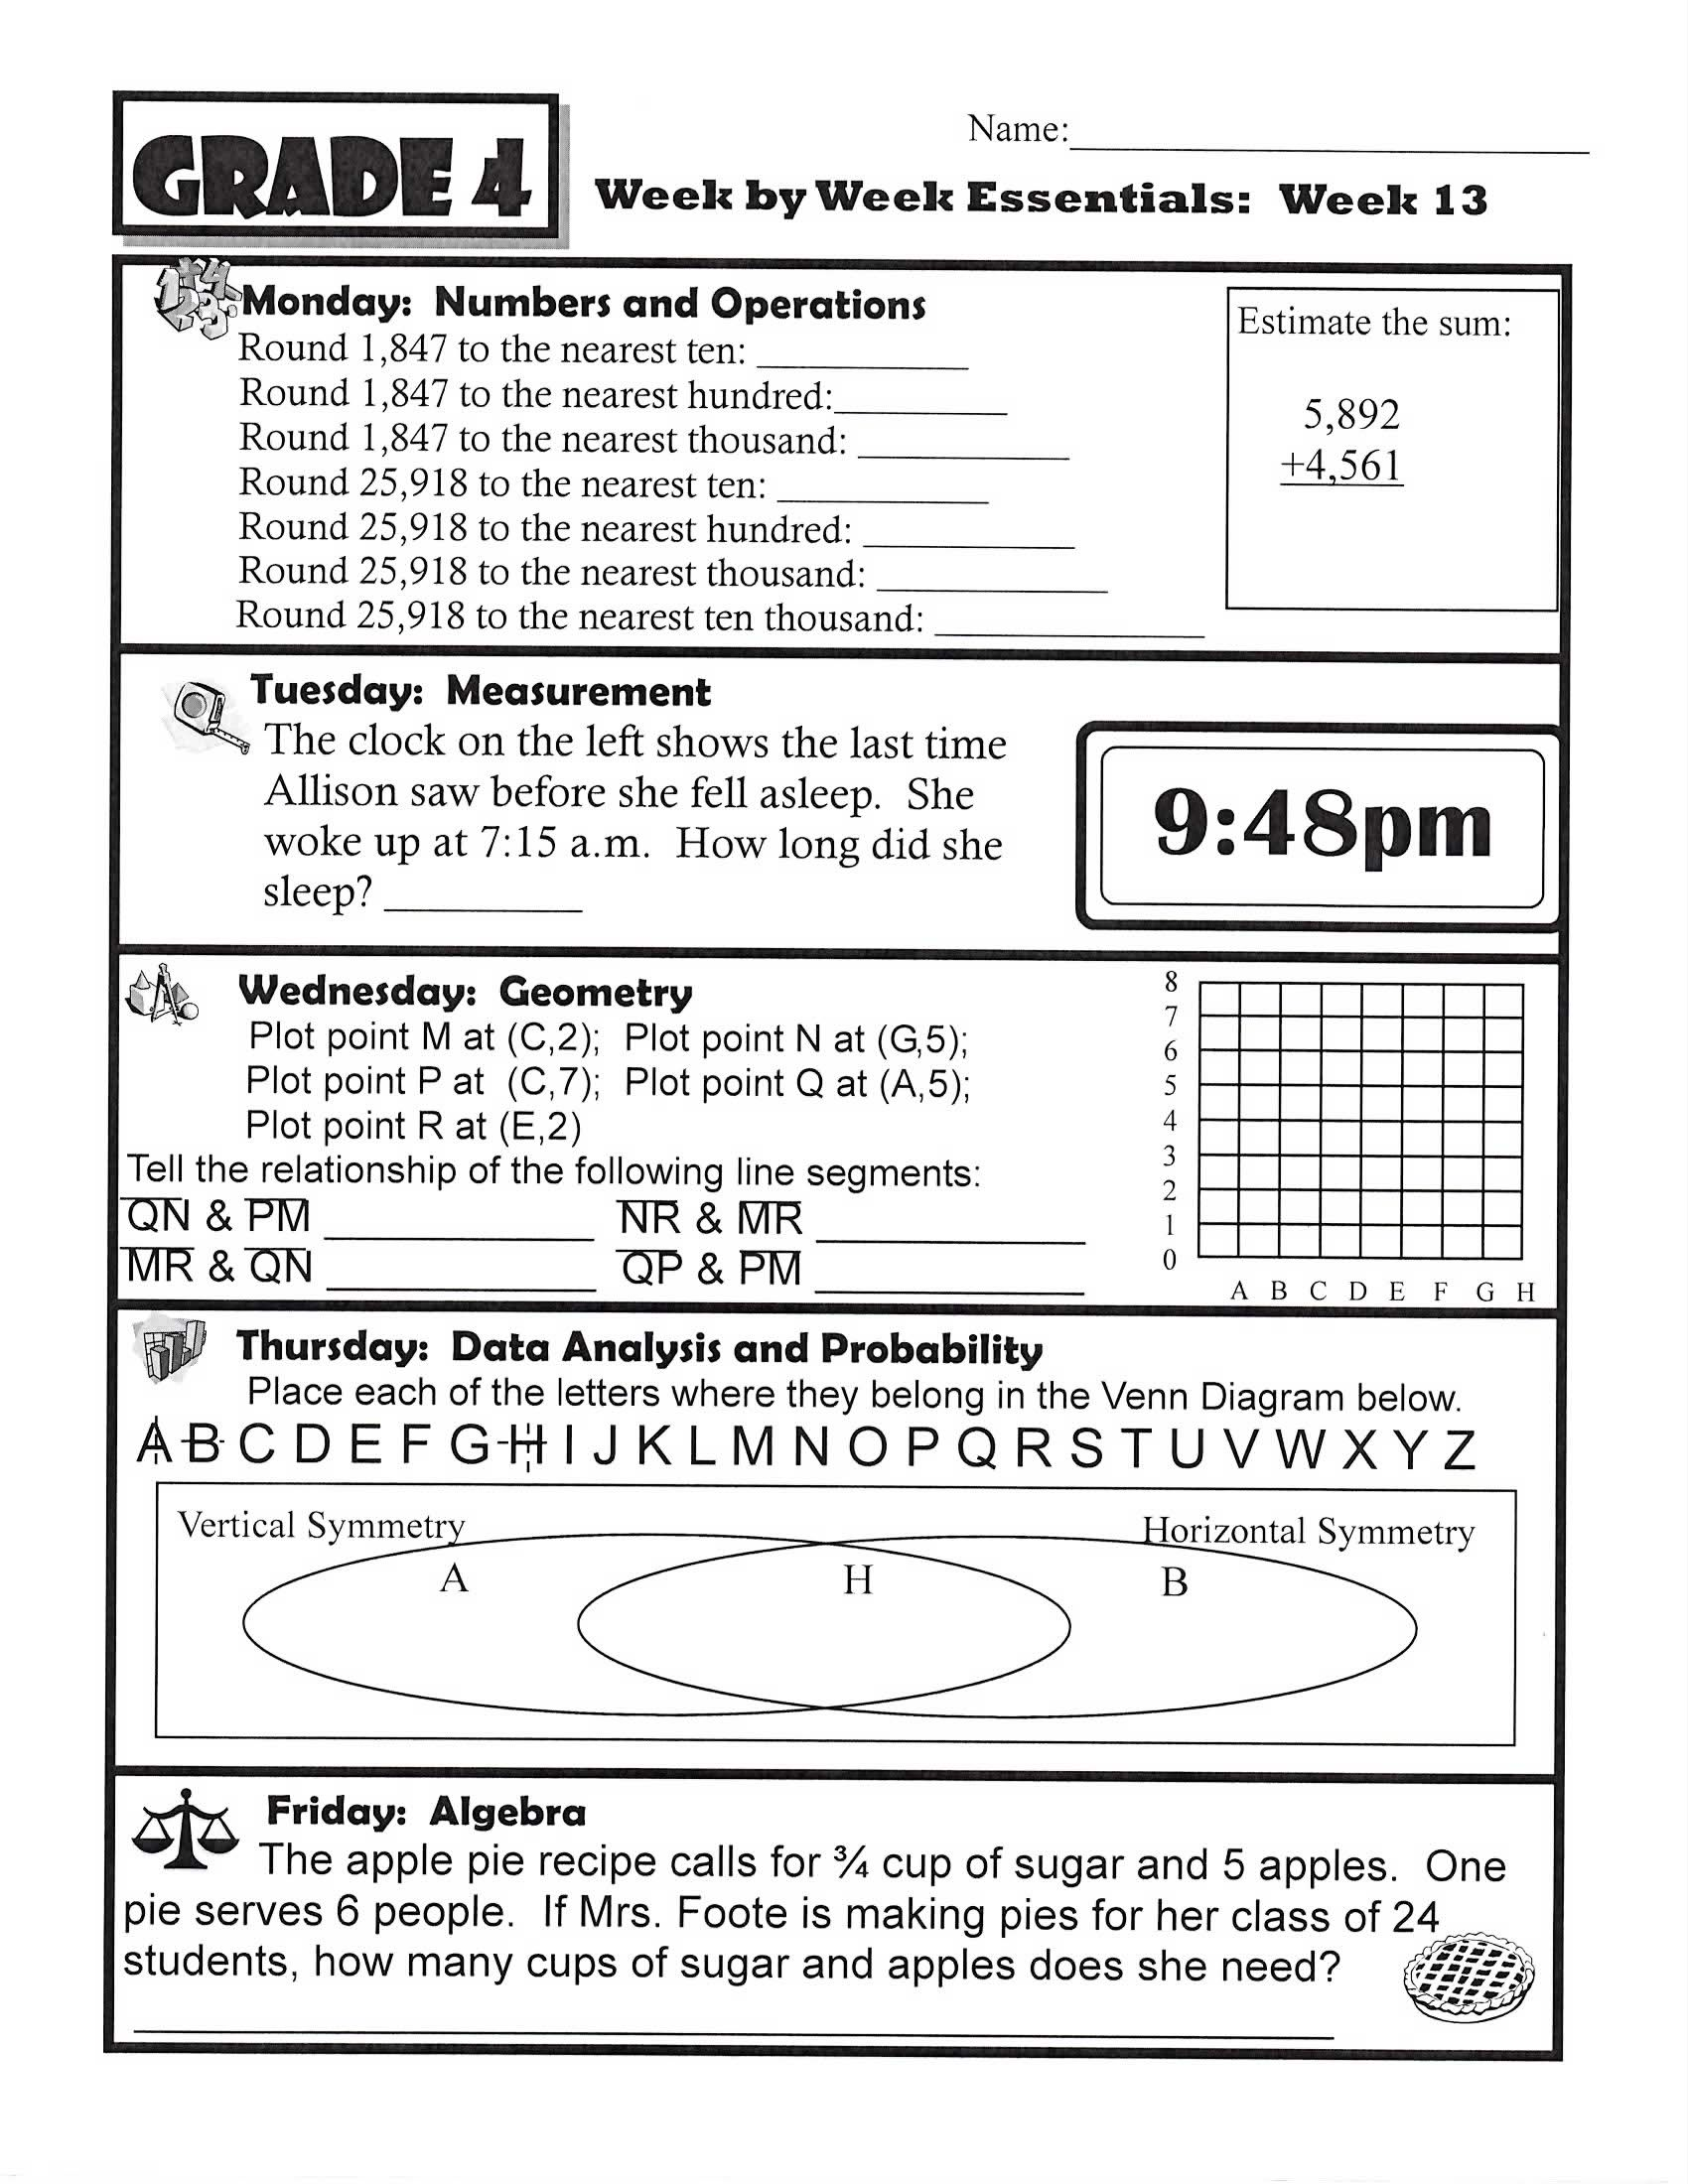 Worksheet 4th Grade Math Review 10 images about home work on pinterest homework common cores and club